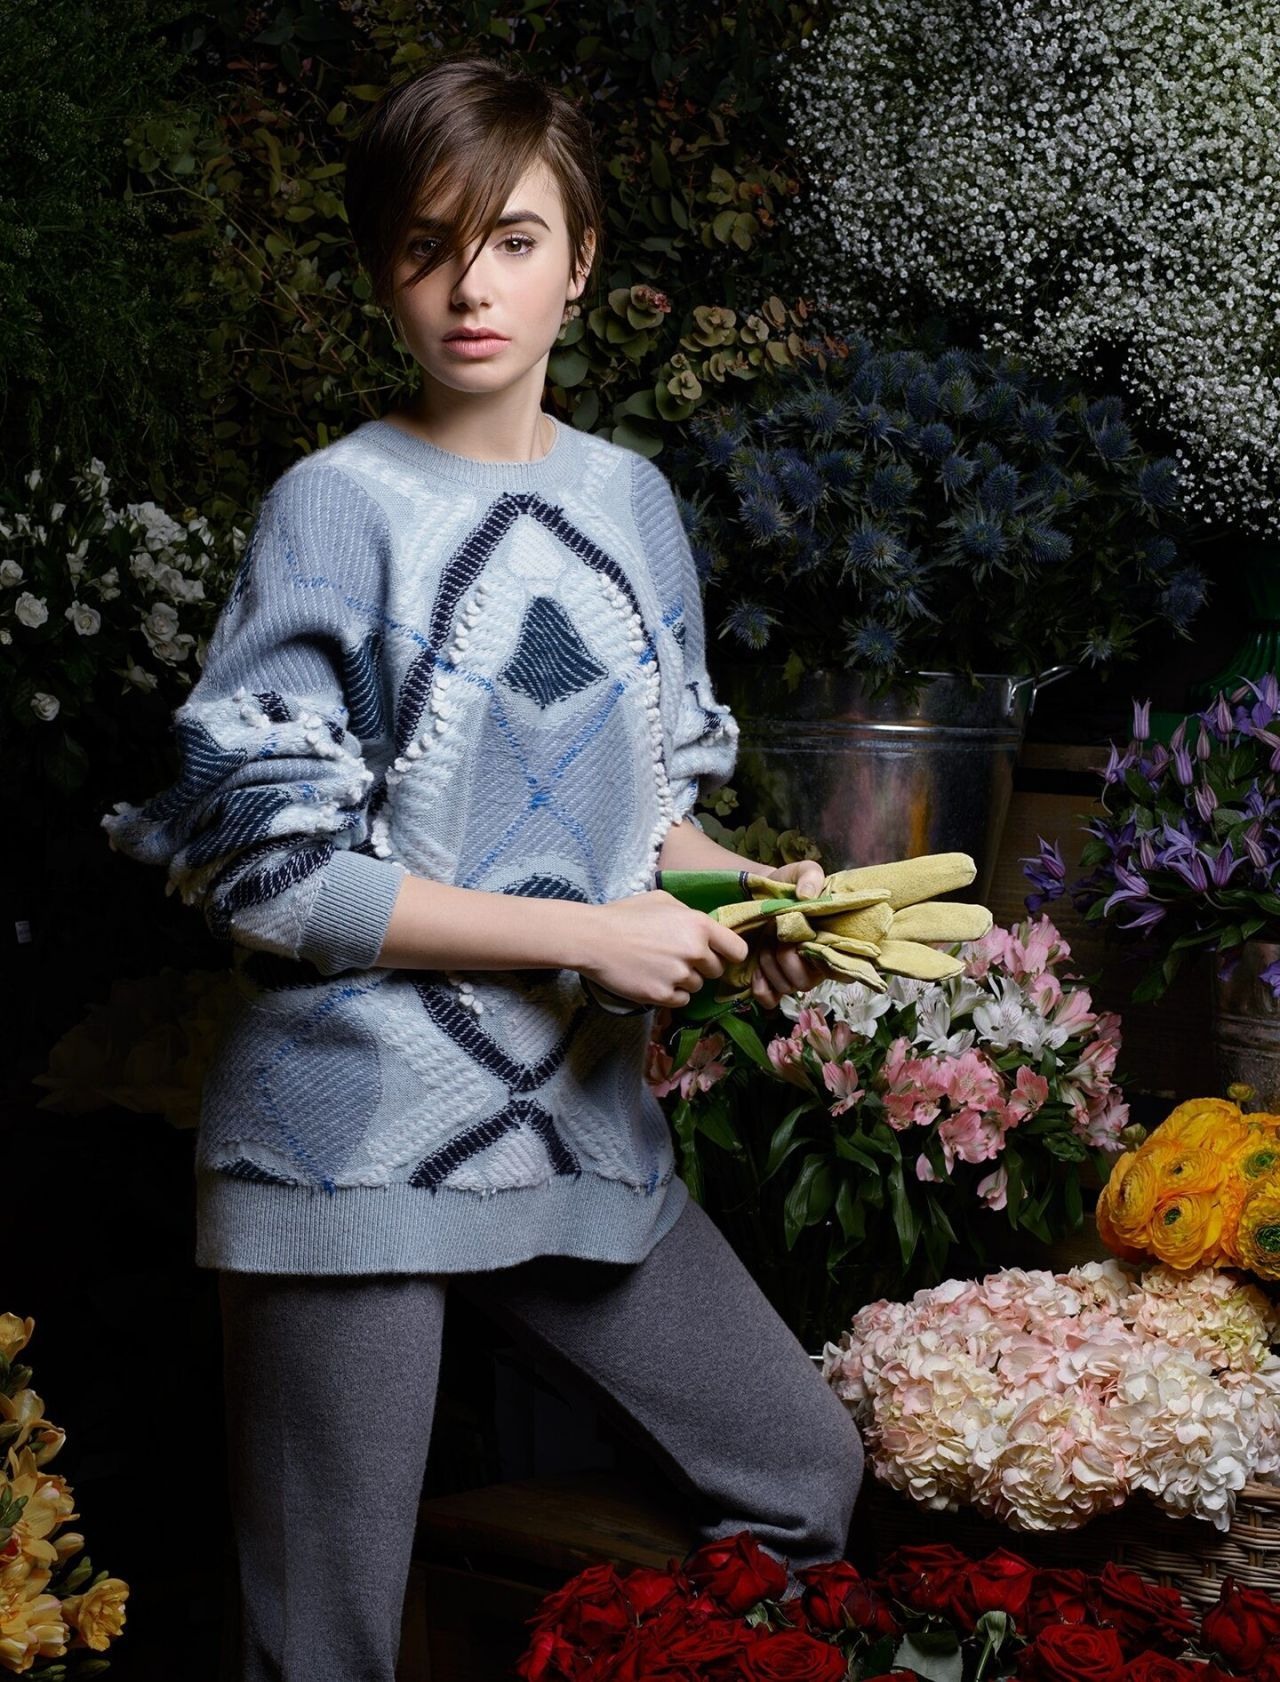 Lily Collins - Barrie Knitwear, Fall/Winter 2015 | Lily ...